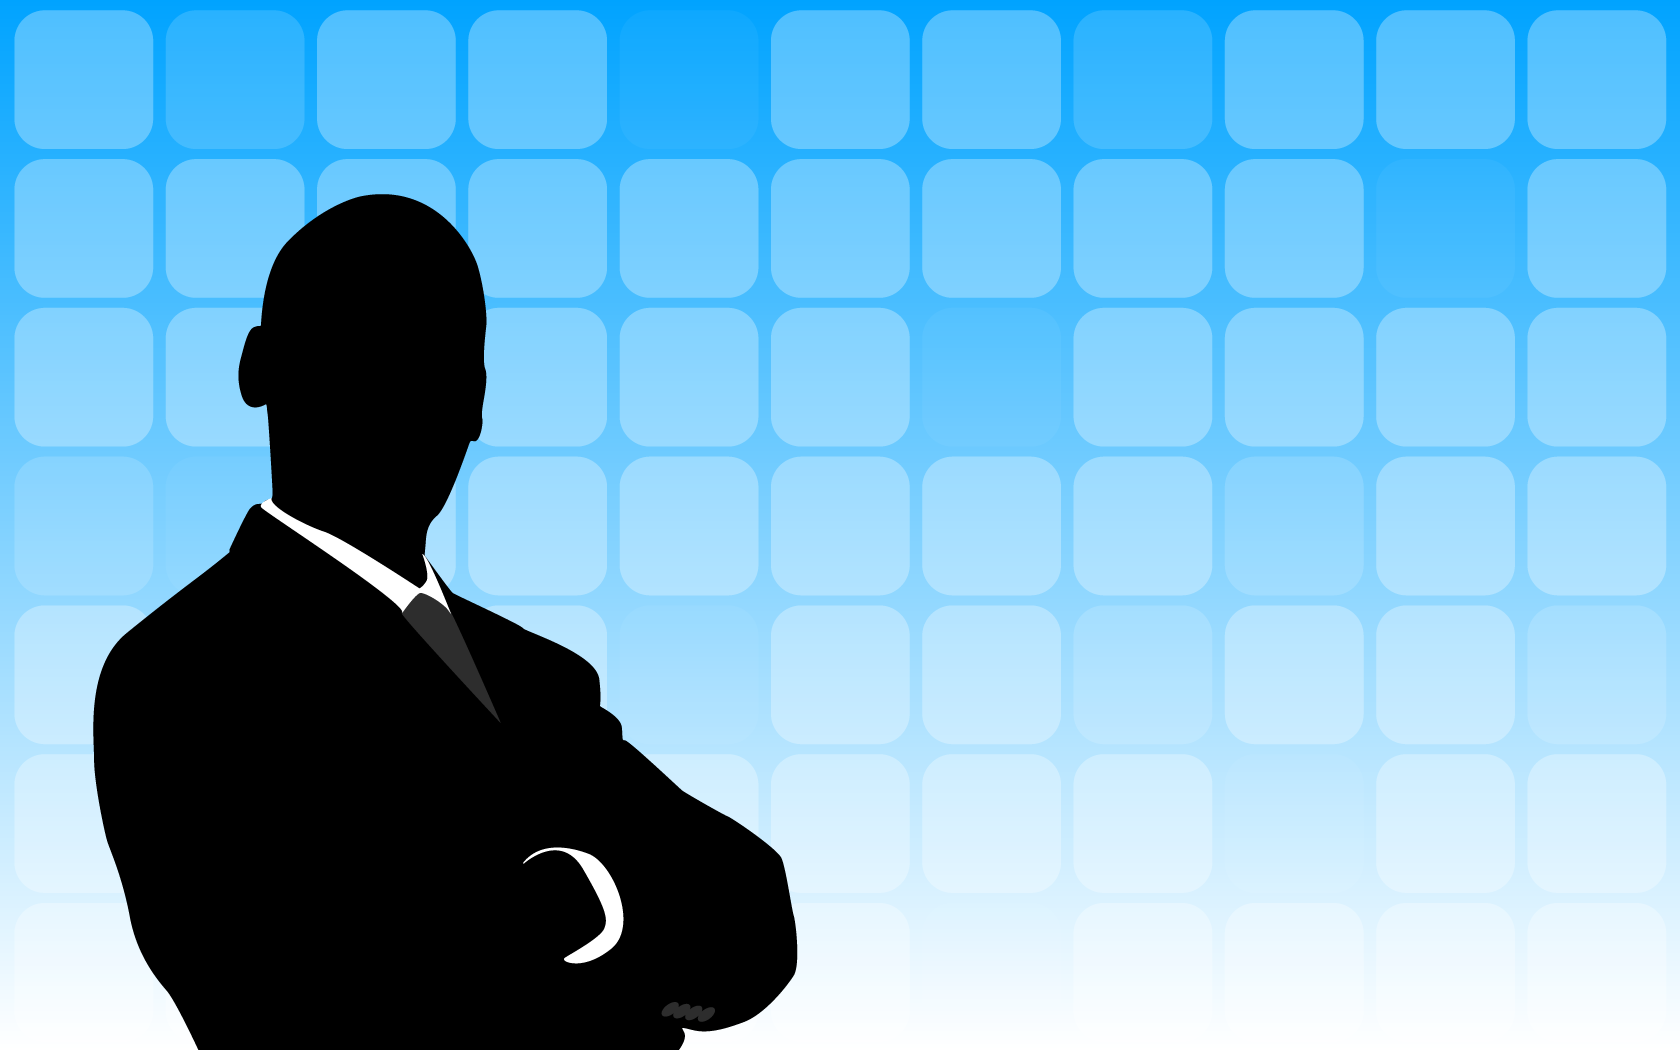 businessman silhouette background